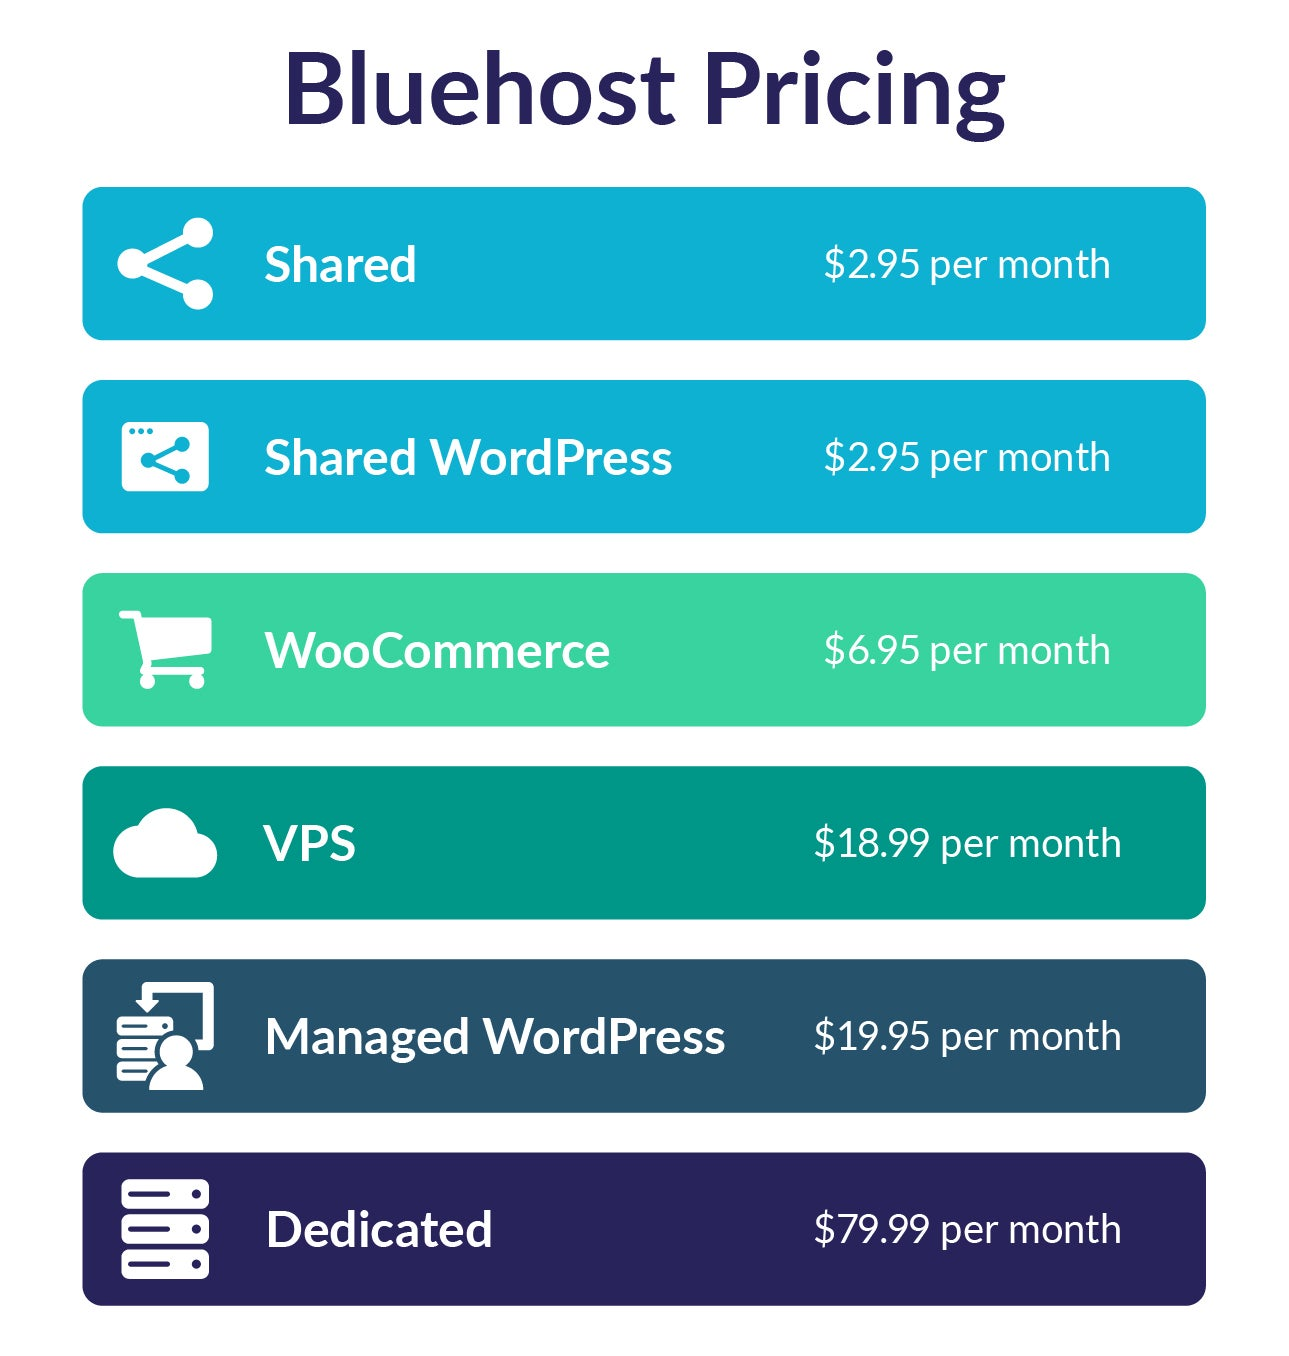 bluehost pricing breakdown infographic